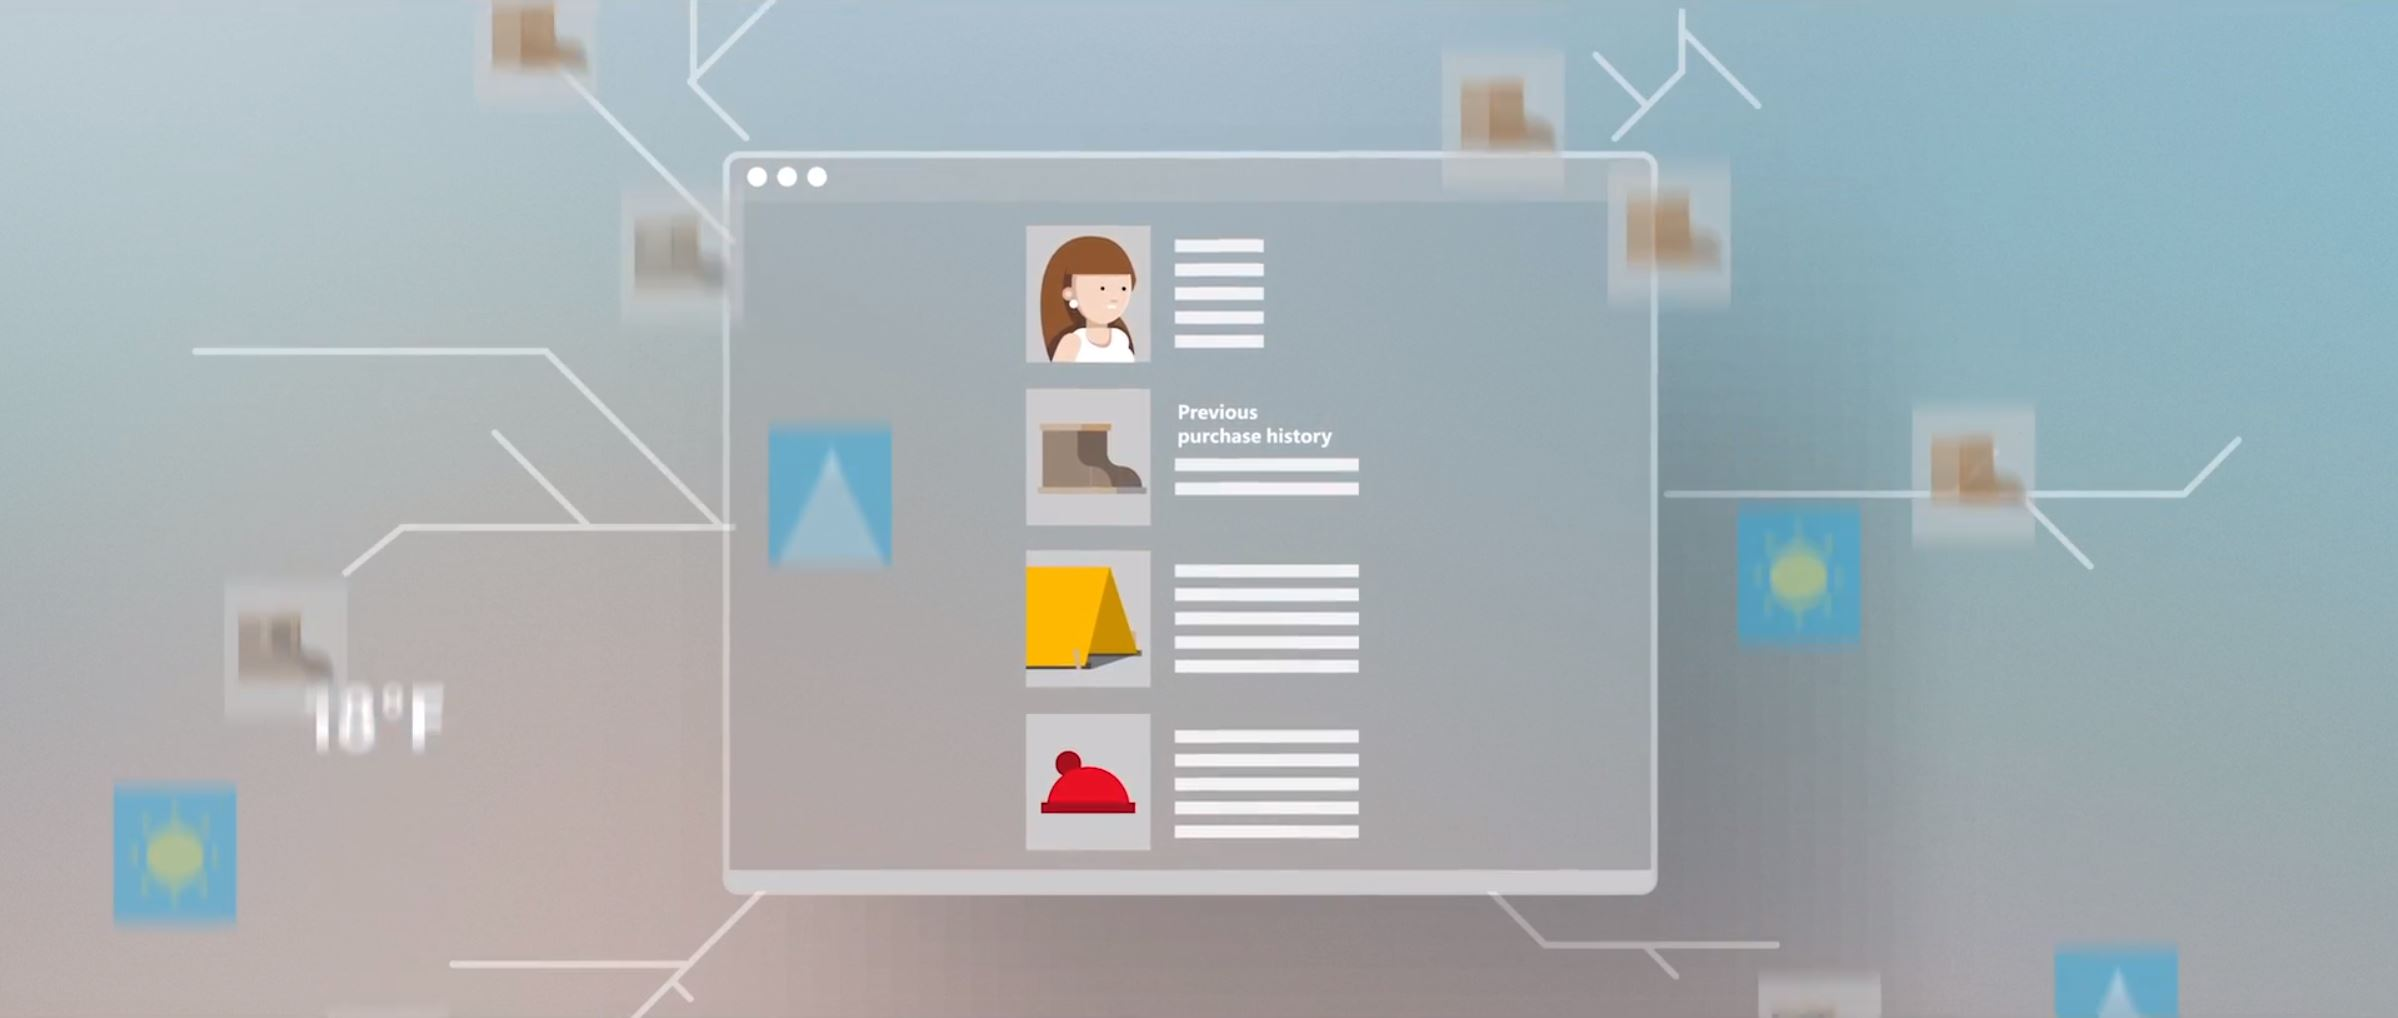 2D character animation image 11 for Microsoft Innovation - retail project